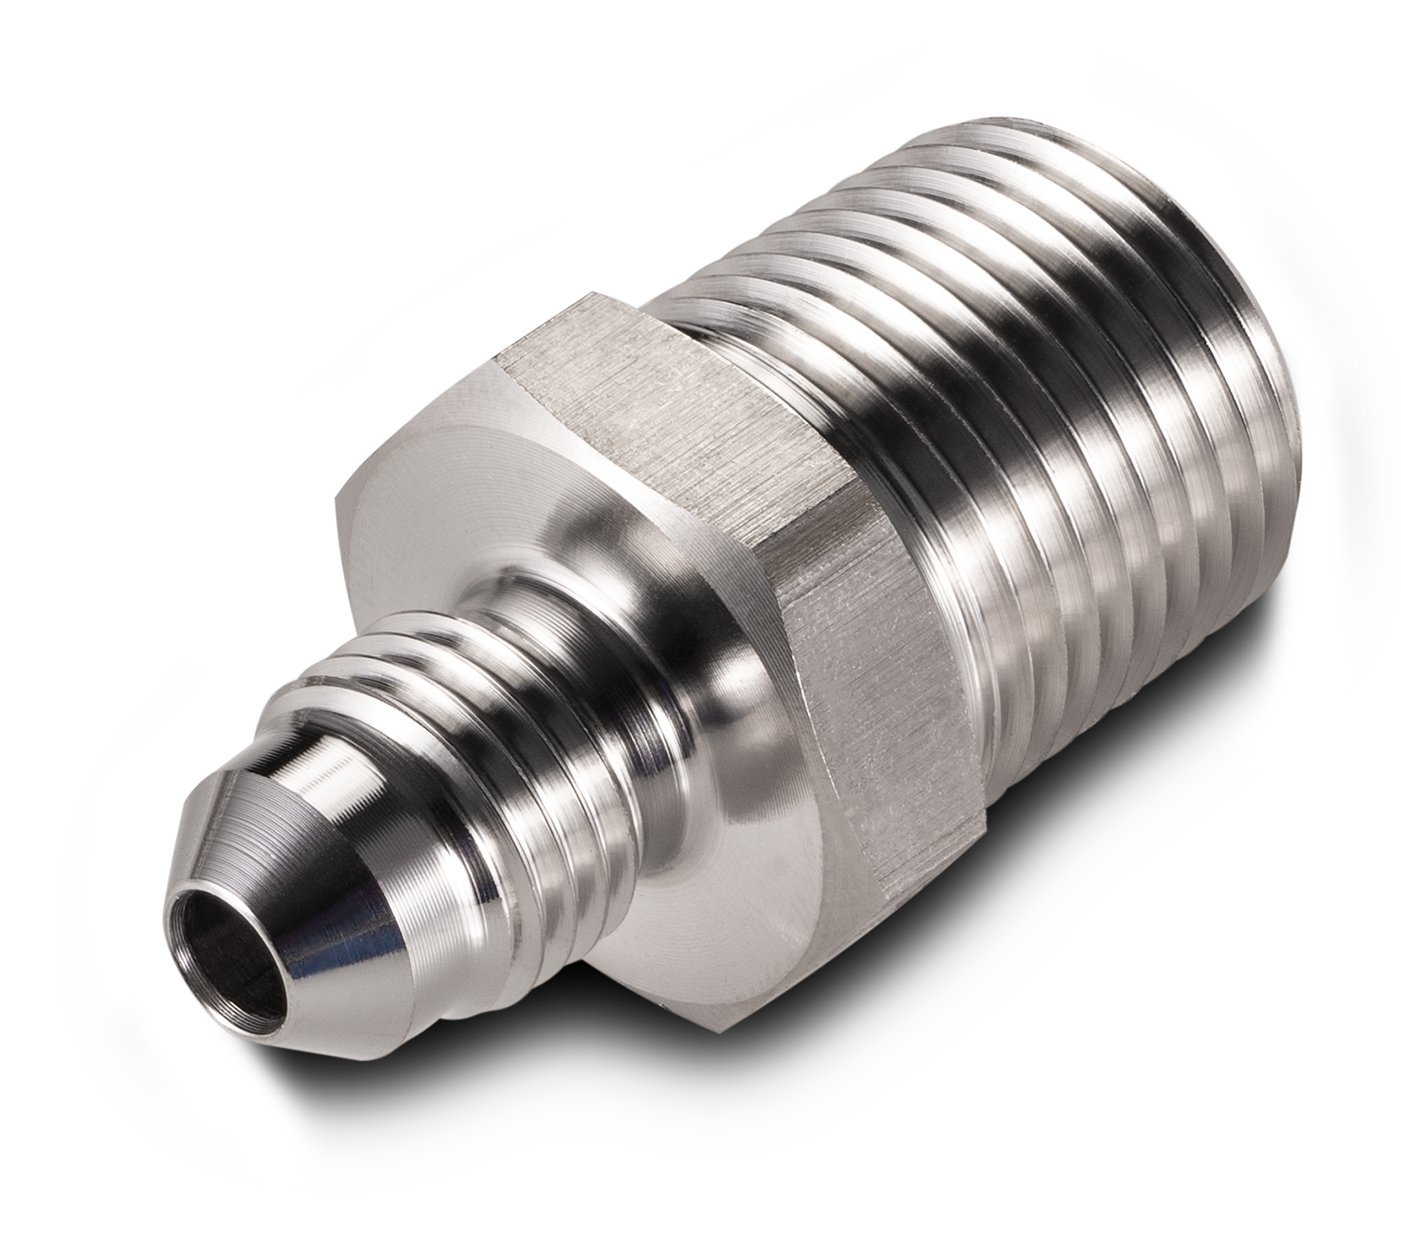 BVV 37° MJIC X MNPT Shop All Categories BVV 1/4-inch x 3/8-inch MNPT